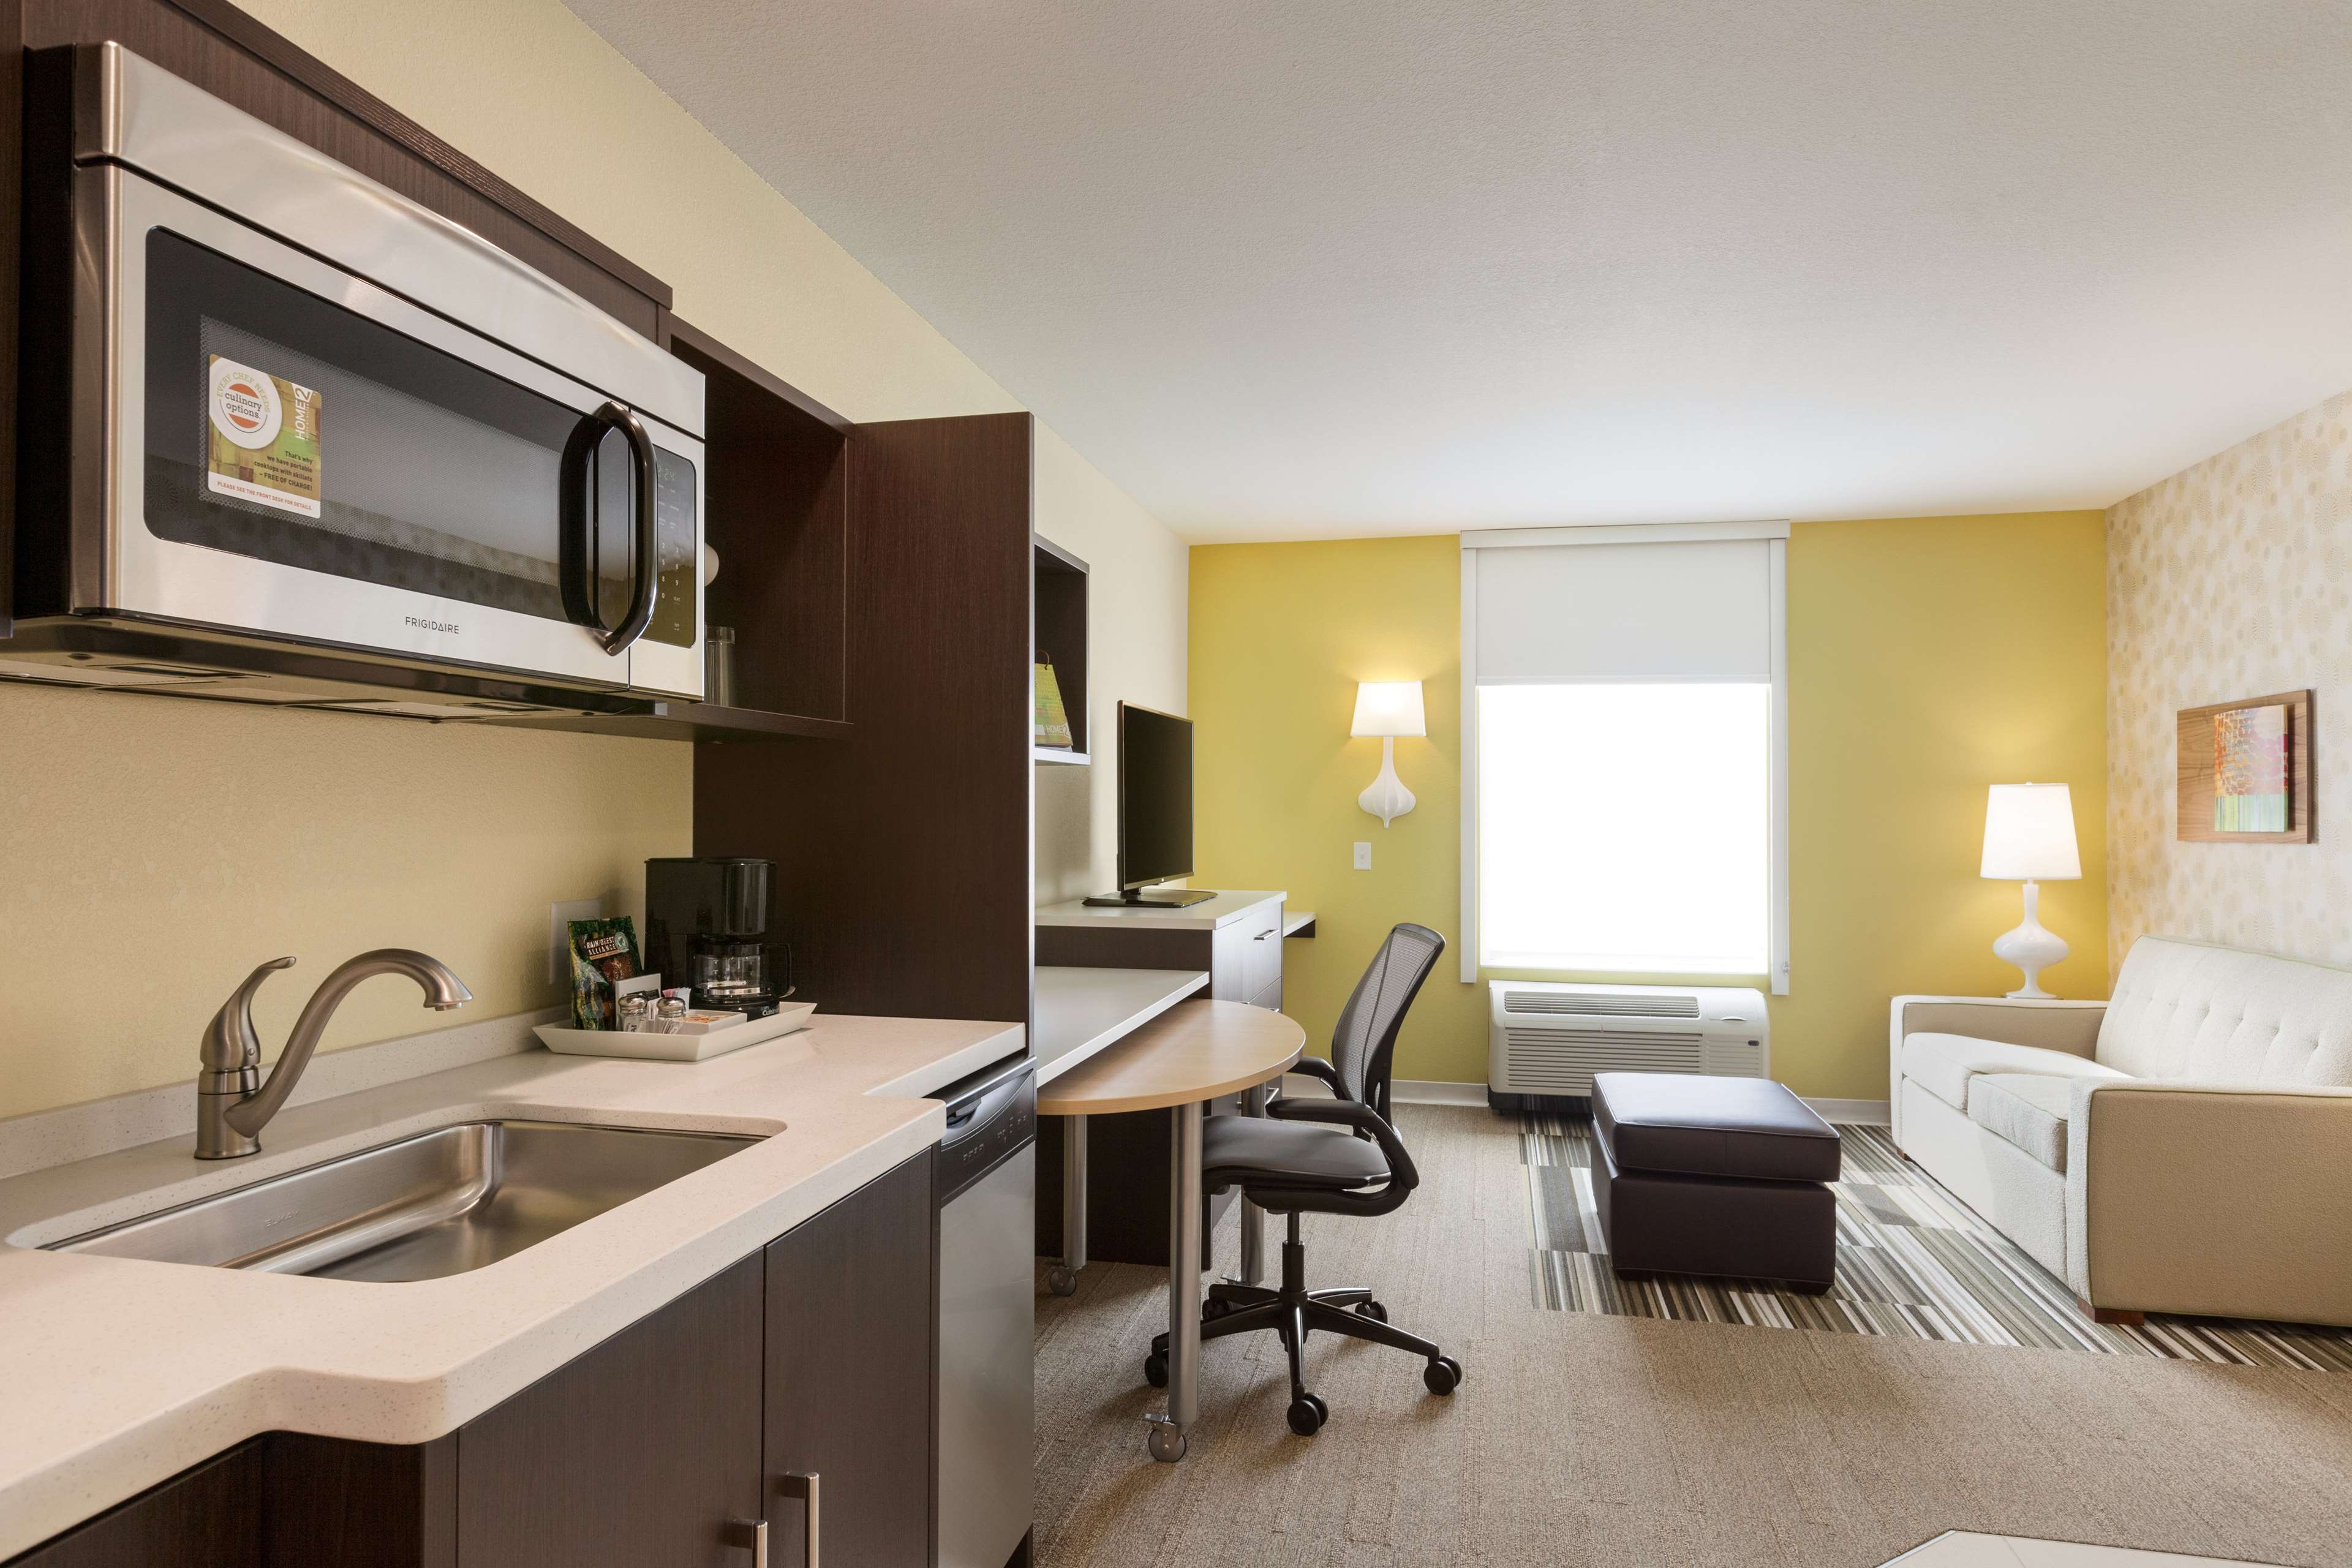 Home2 Suites By Hilton Youngstown West - Austintown image 14